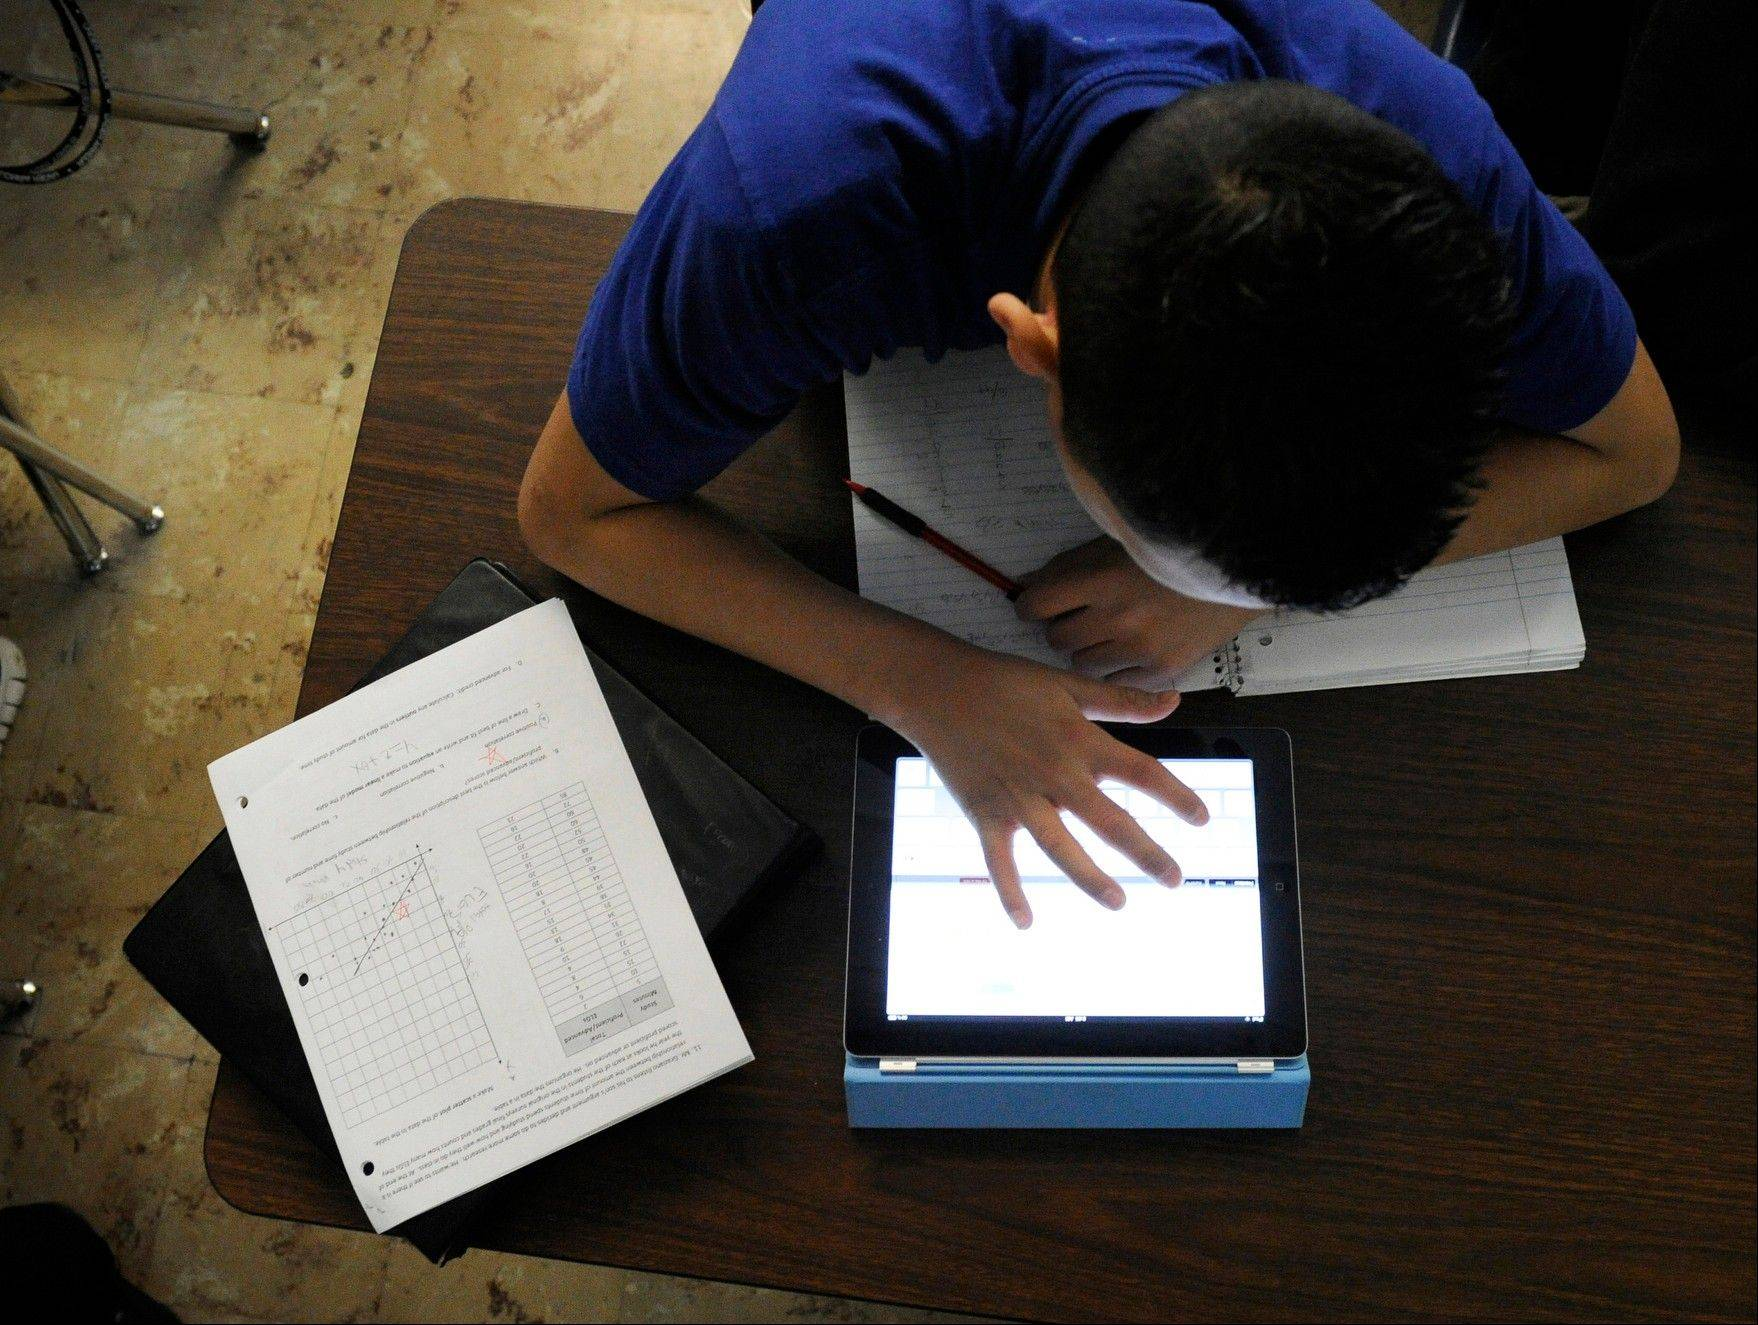 More and more students across the country are using tablet computers in their classes.